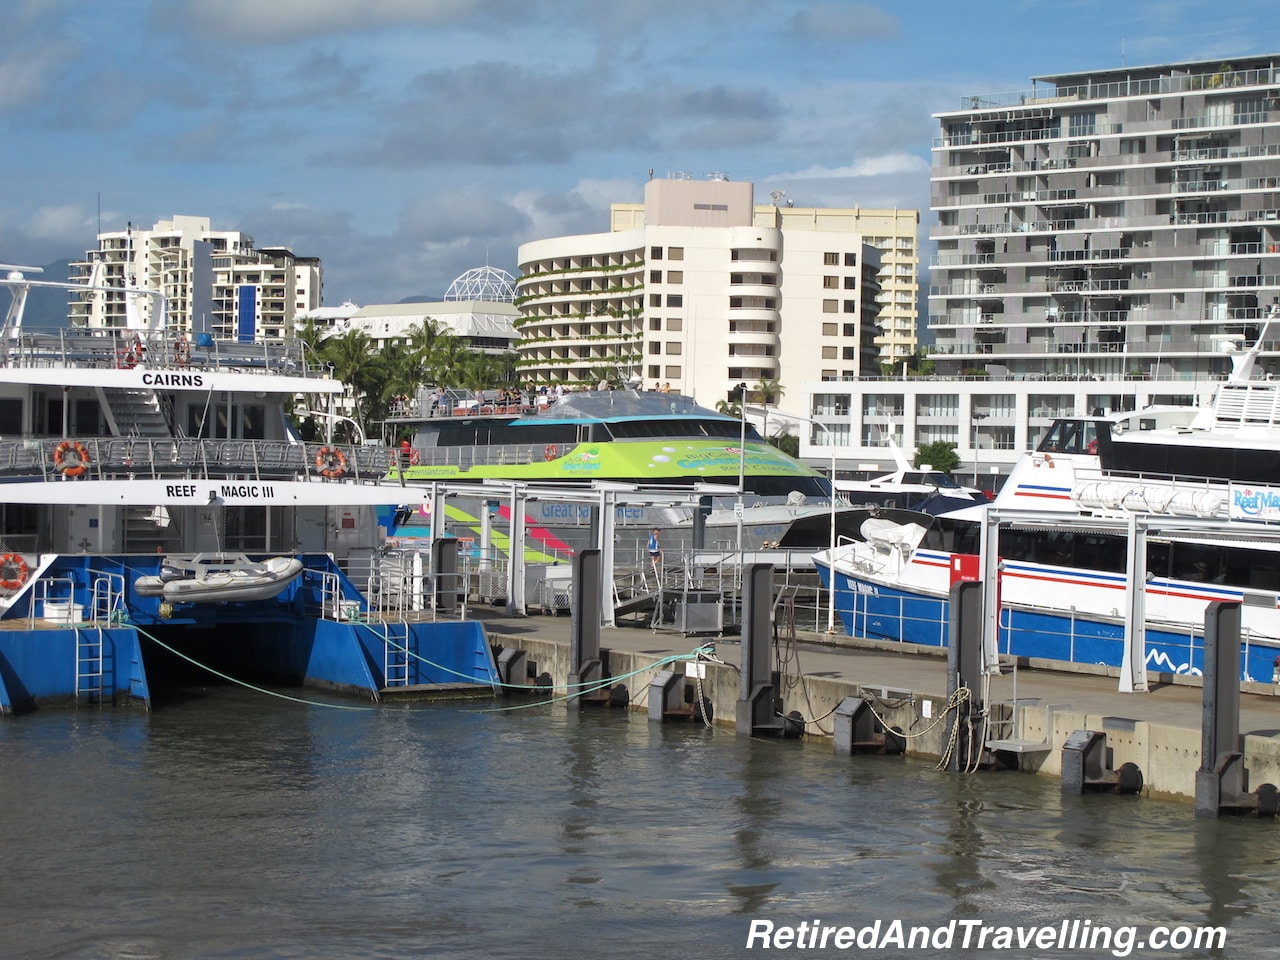 Cairns Main Dock - Cairns Travel Break.jpg